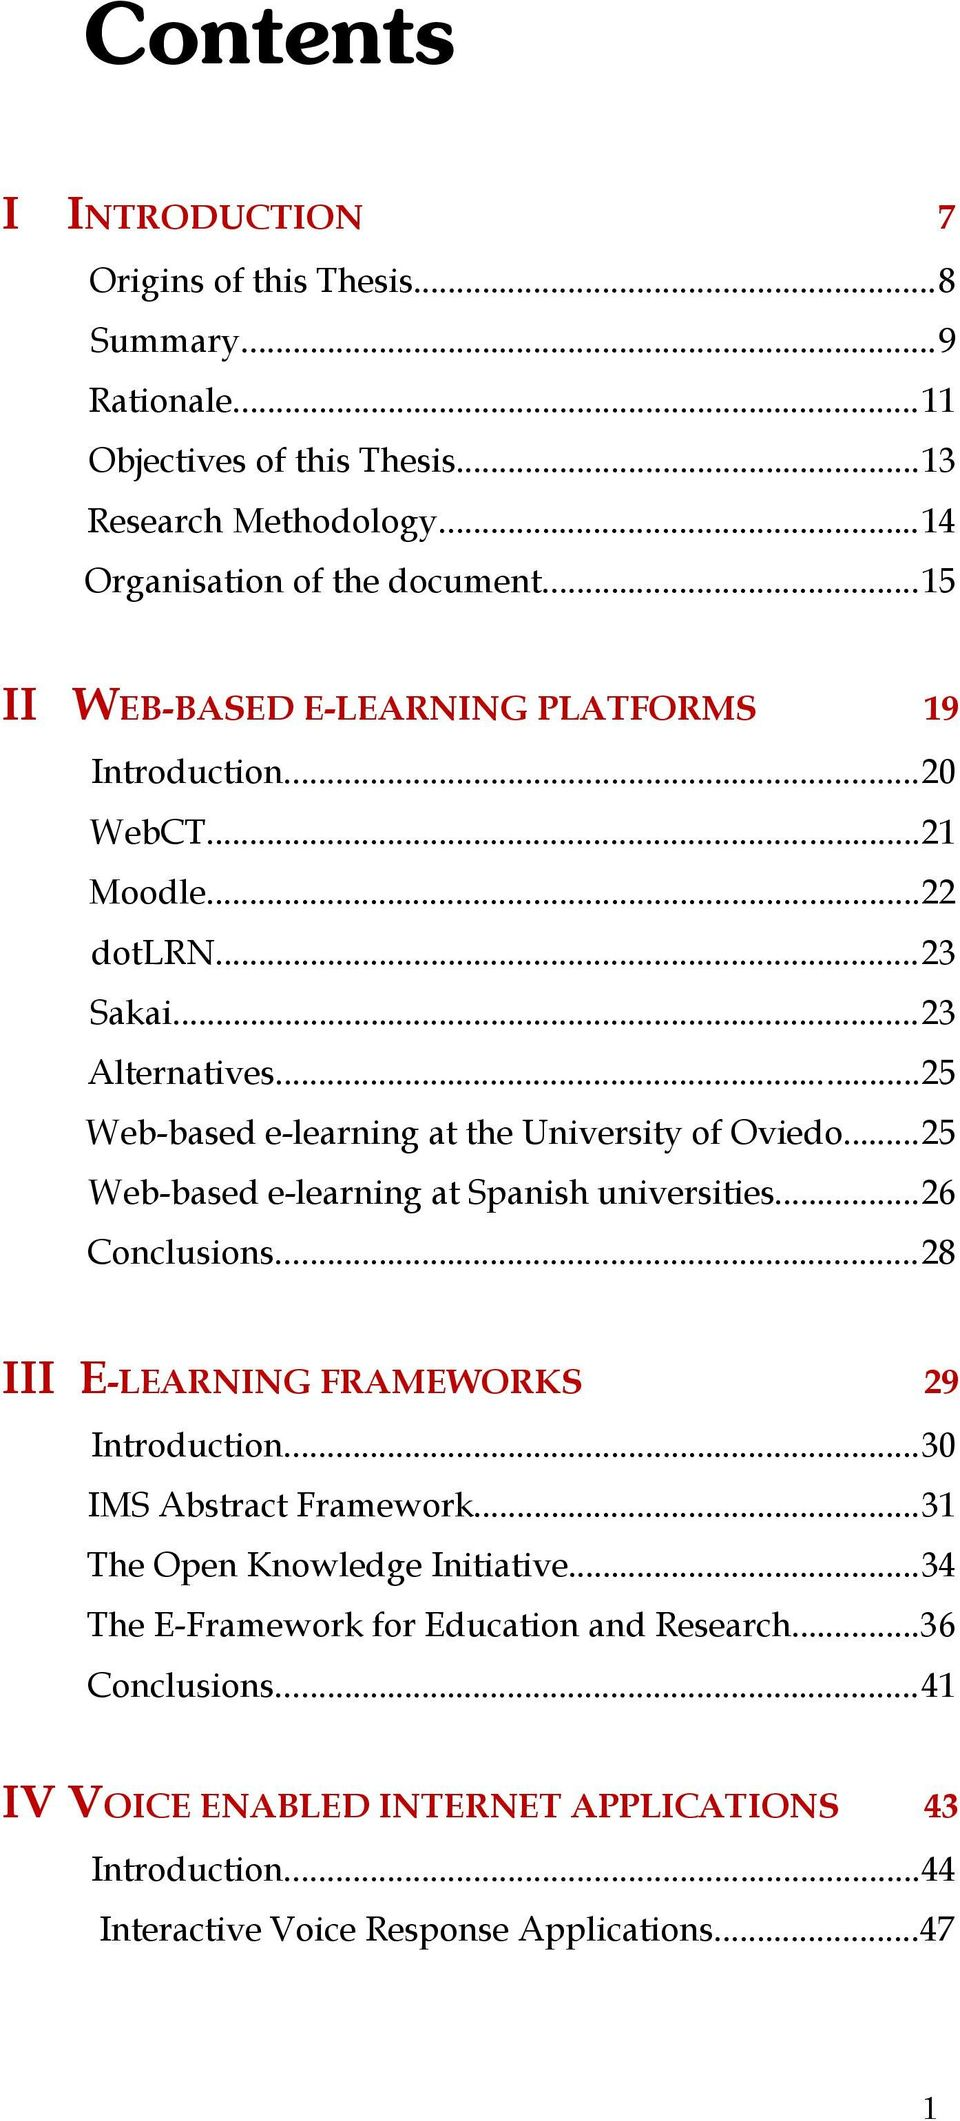 ..25 Web-based e-learning at Spanish universities...26 Conclusions...28 III E-LEARNING FRAMEWORKS 29 Introduction...30 IMS Abstract Framework.